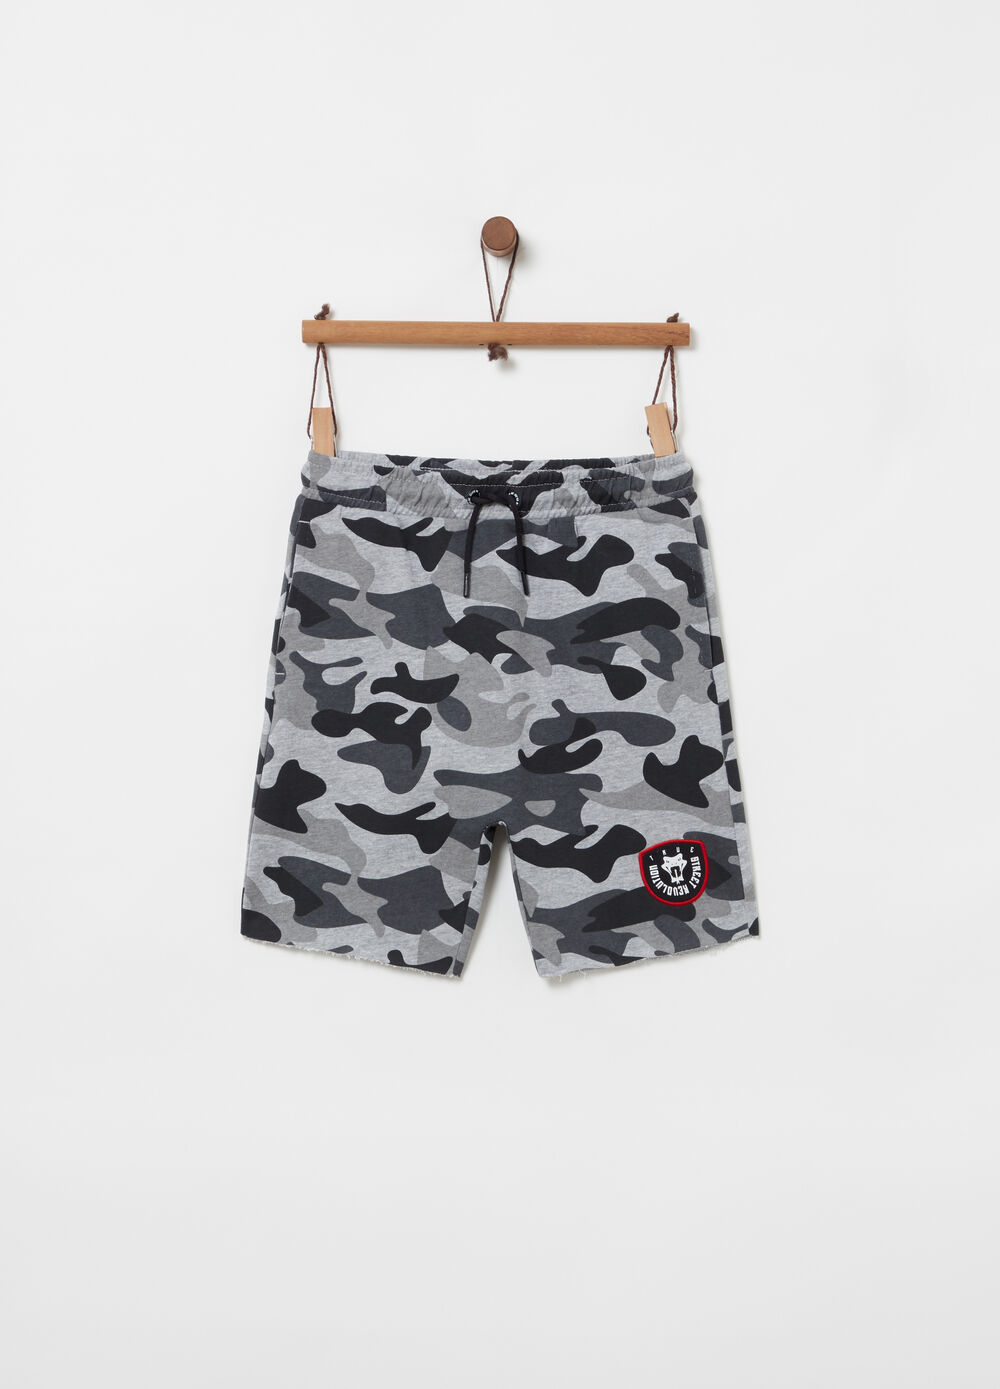 Loose-fit camouflage shorts with low crotch